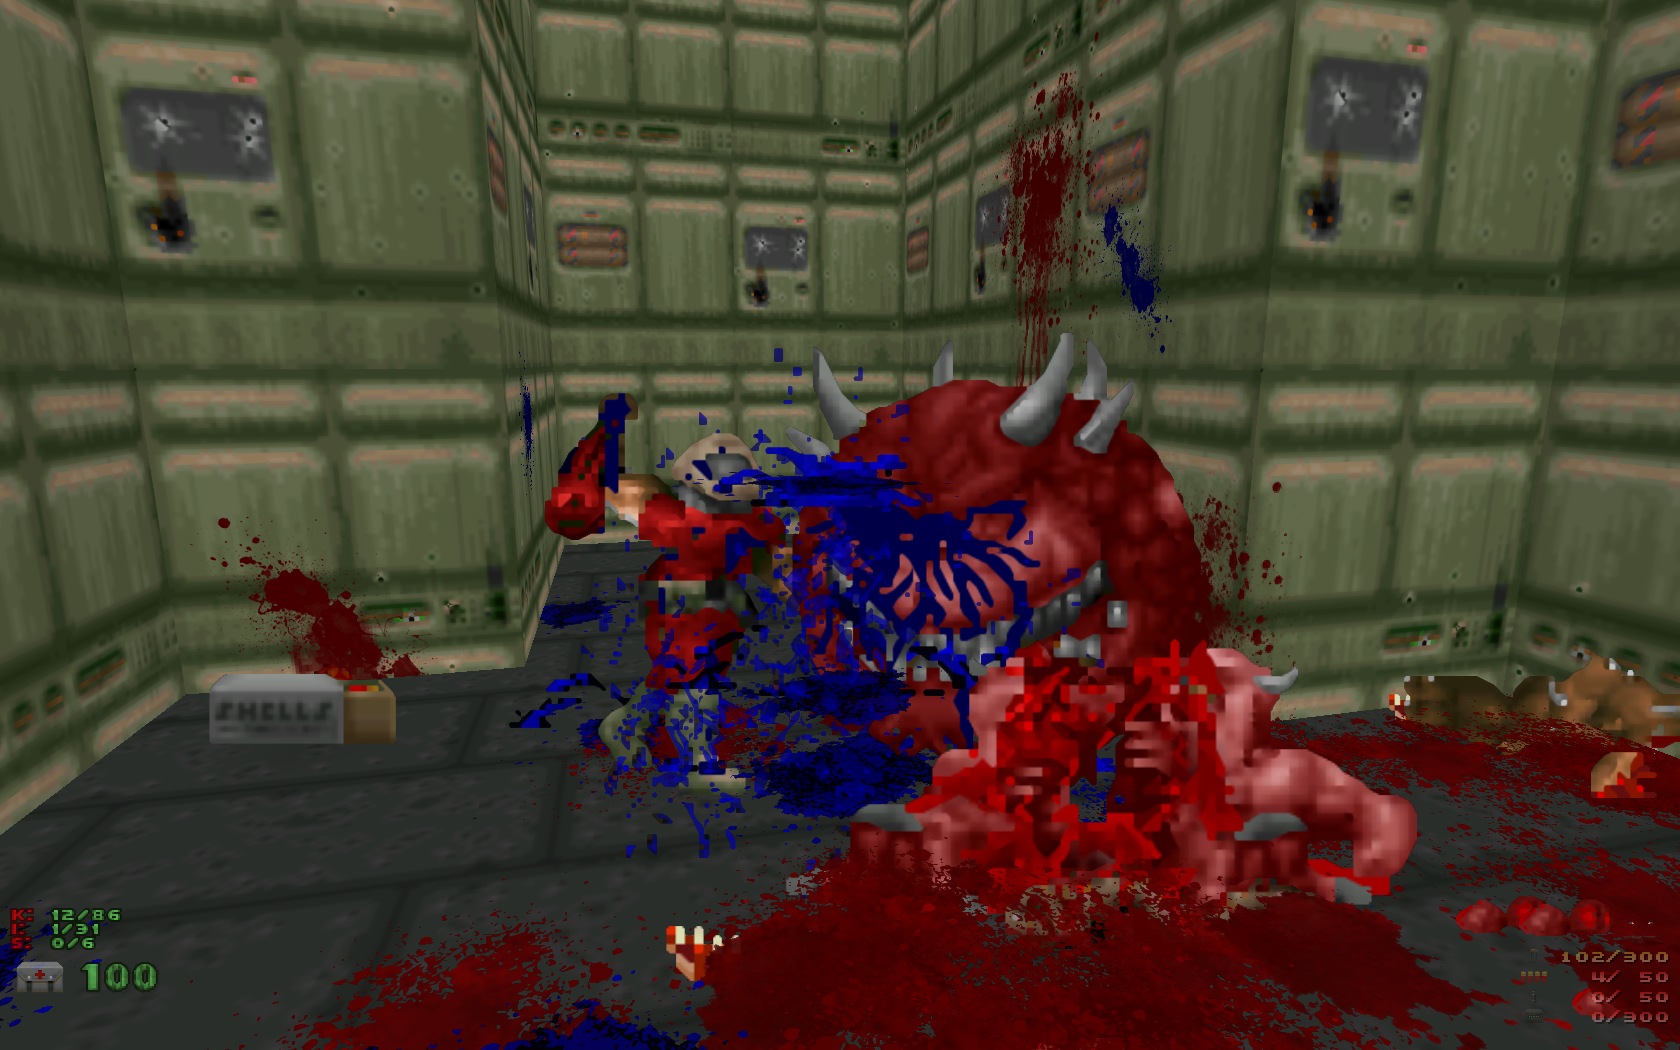 Brutal Doom - The Doom Wikia - Doom, Doom 2, Doom 3, and more